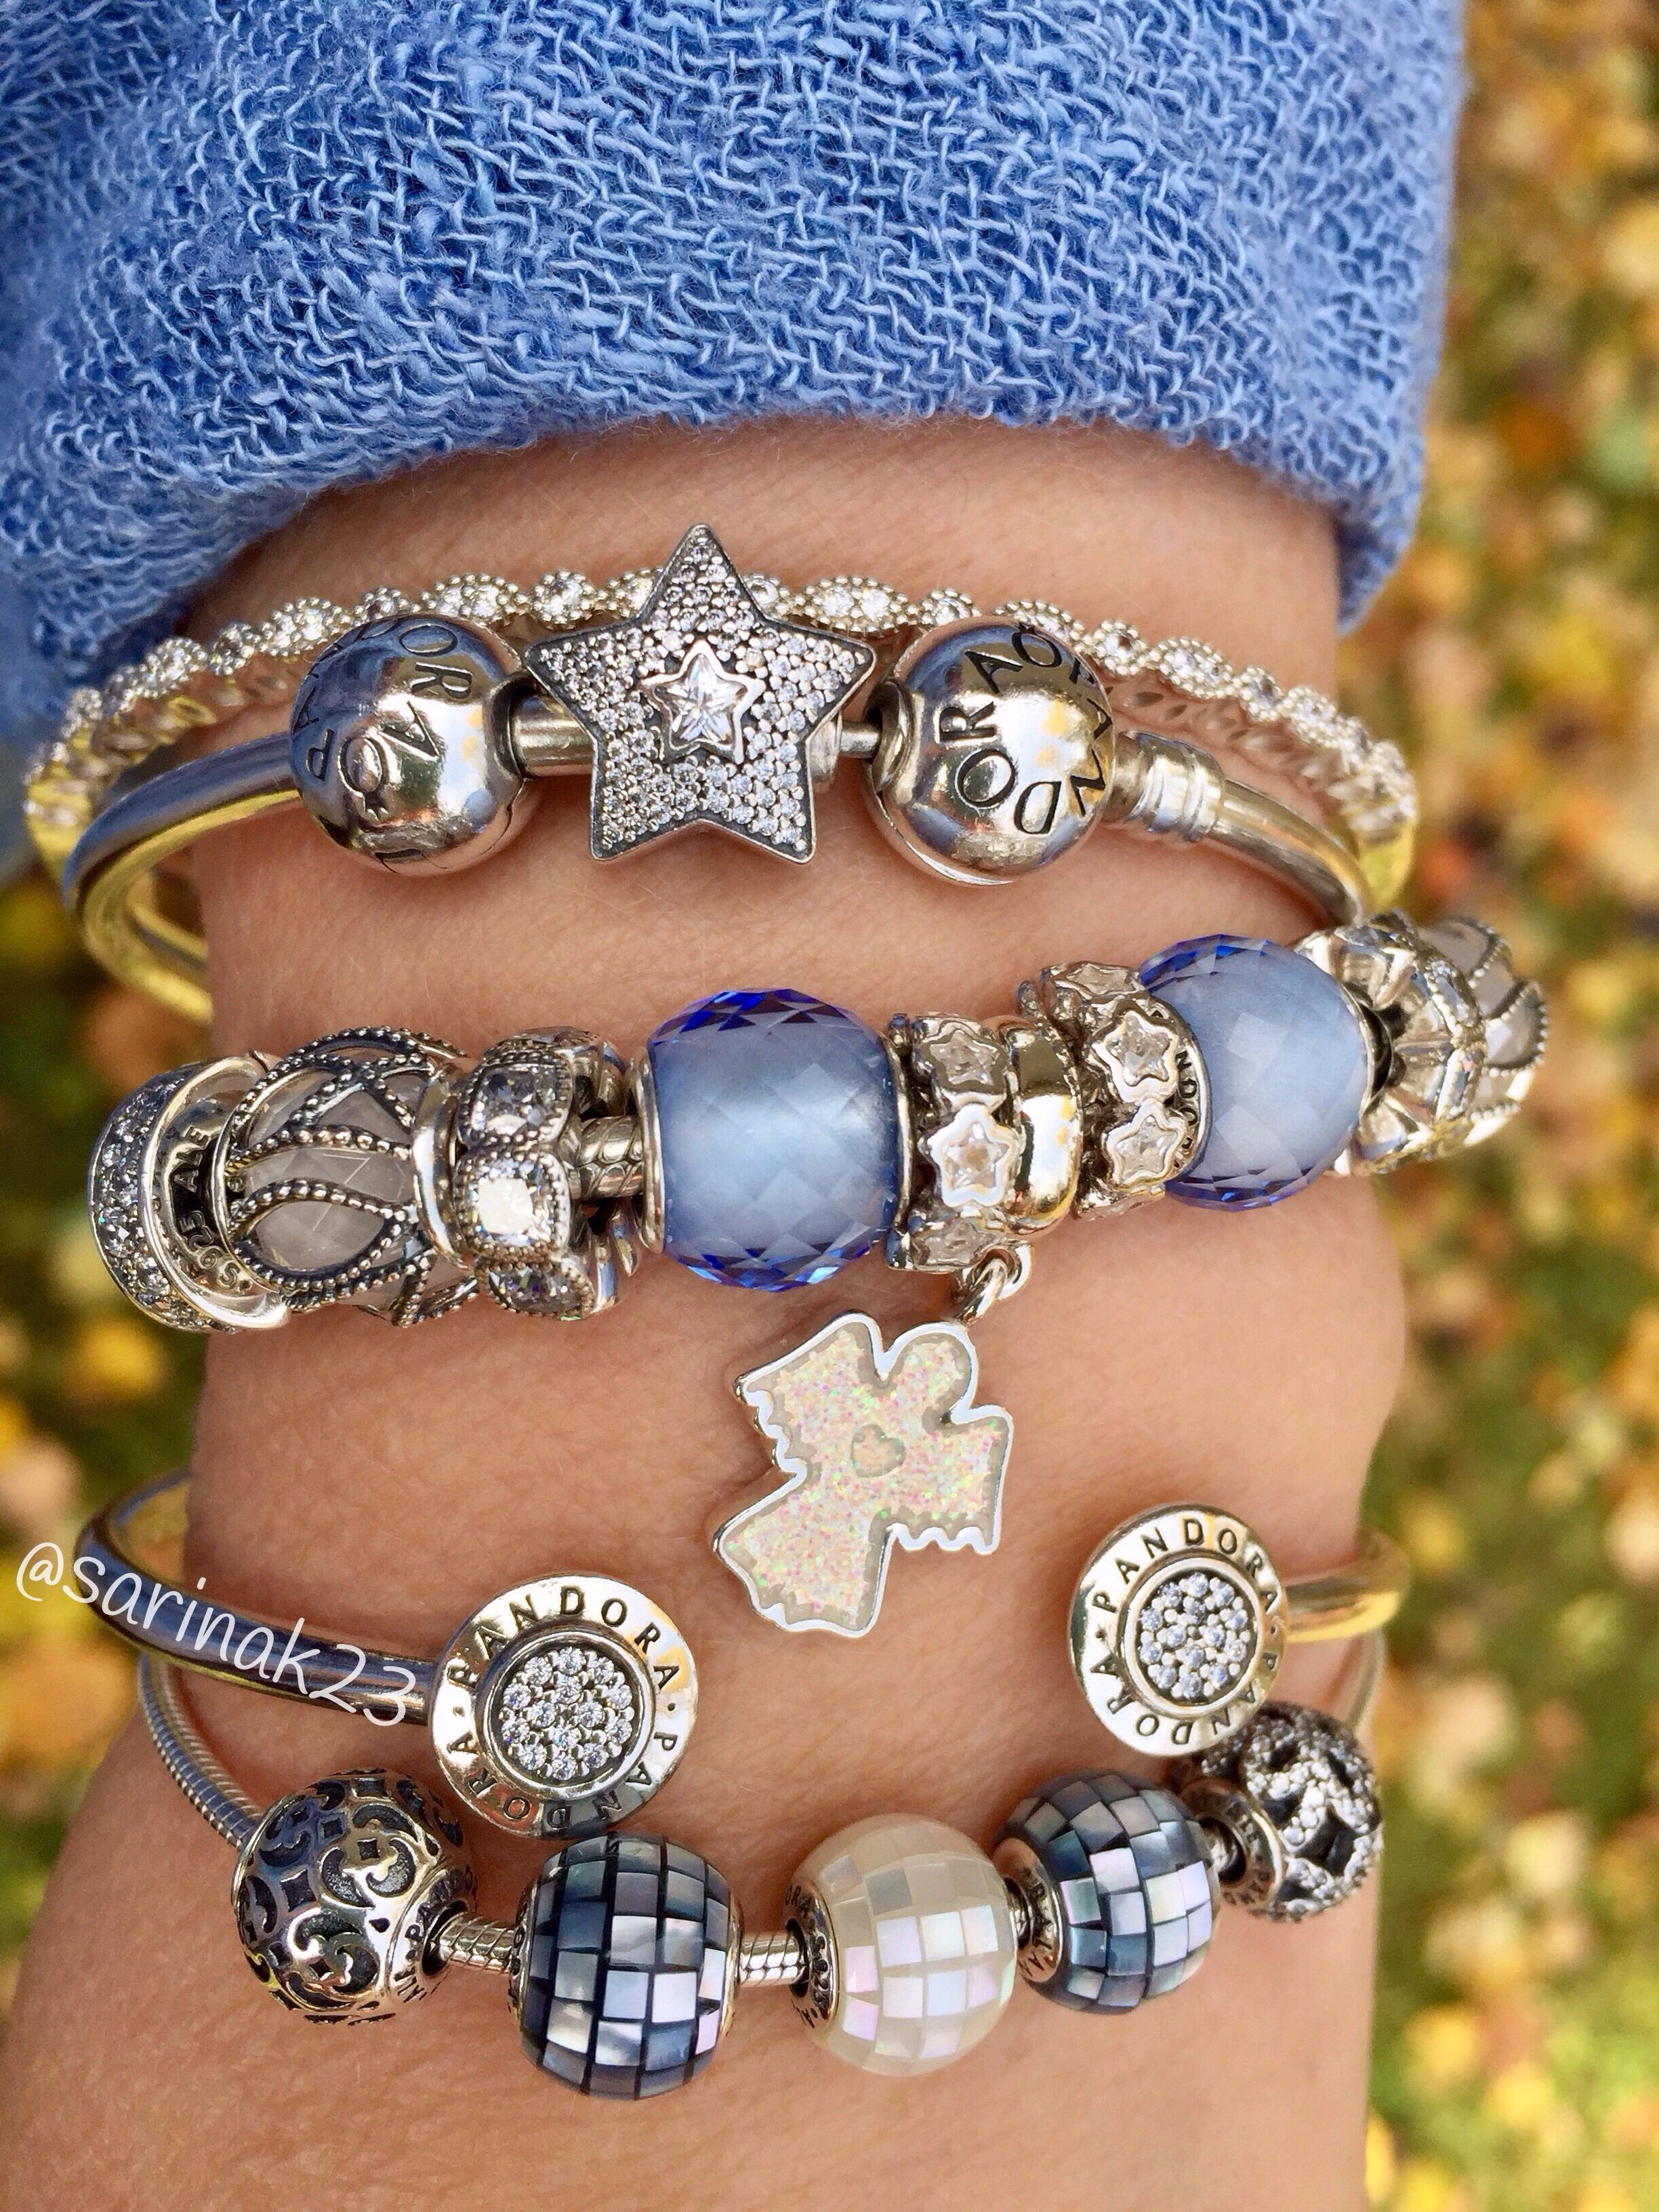 Heavenly blues and silver pandora beads and bracelets sarinak